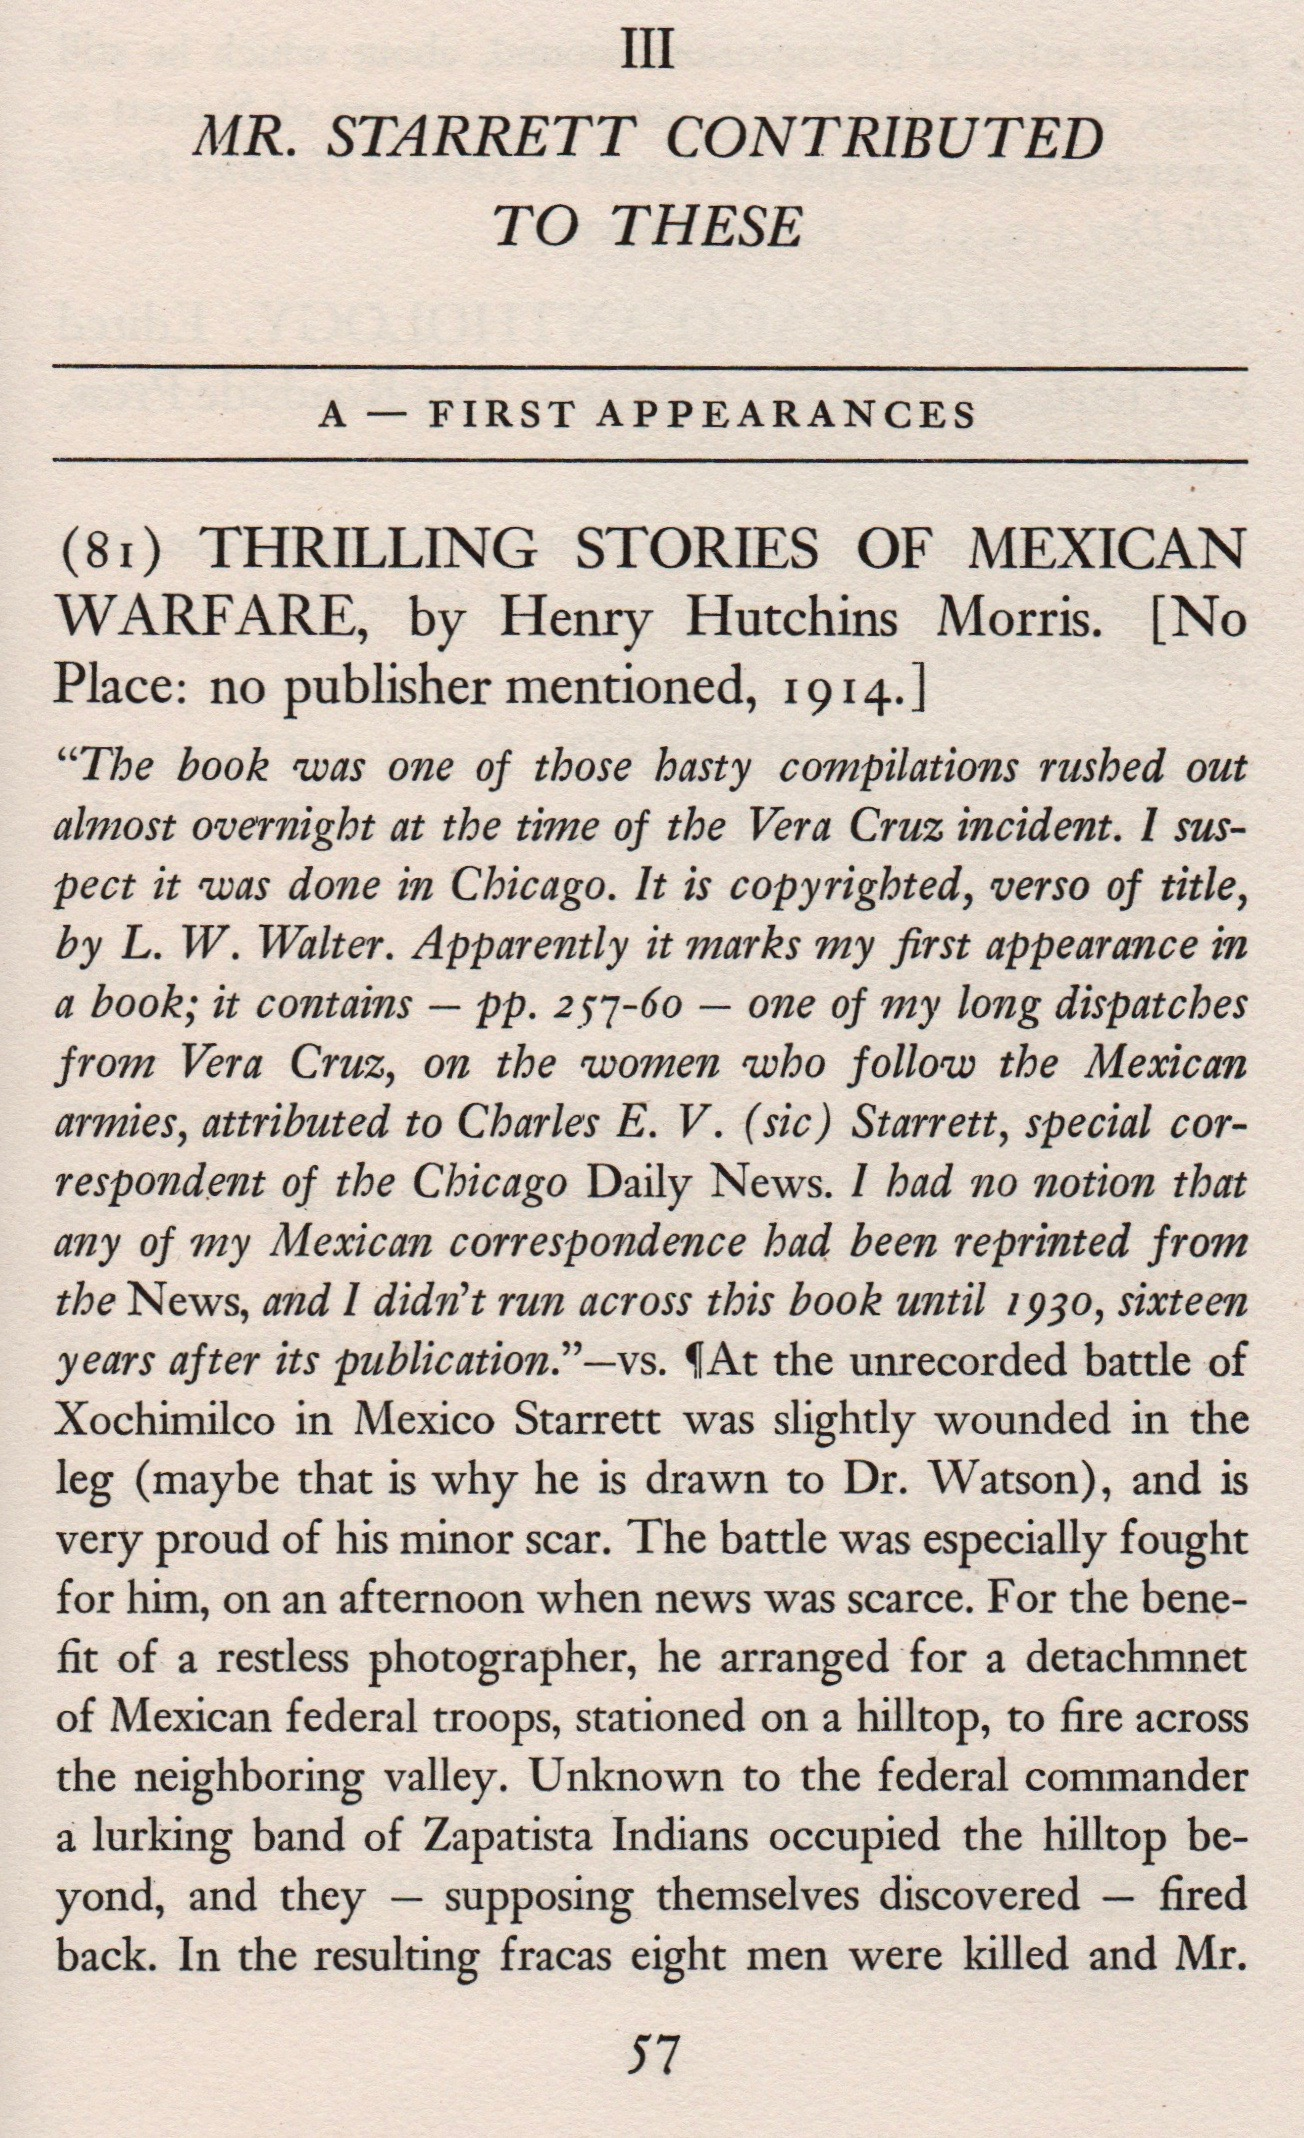 Thrilling Stories of Mexican Warfare in Honce.jpeg